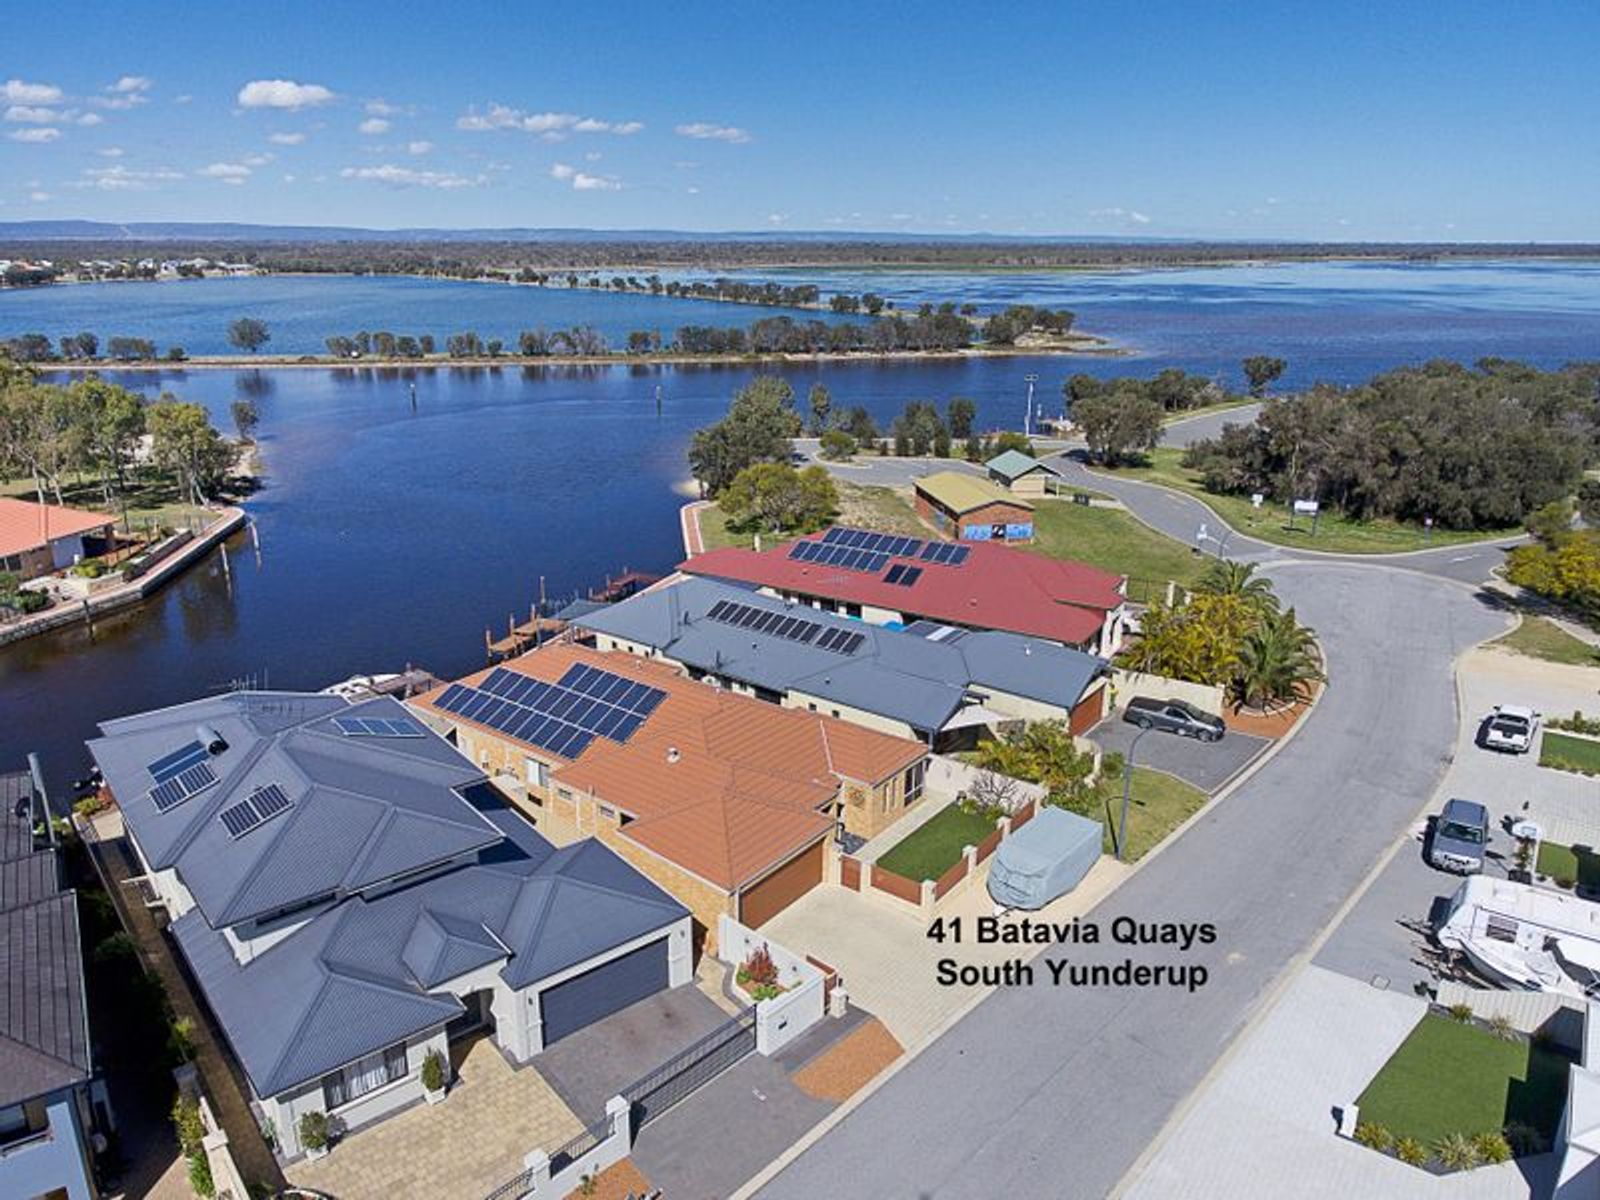 41 Batavia Quays, South Yunderup, WA 6208